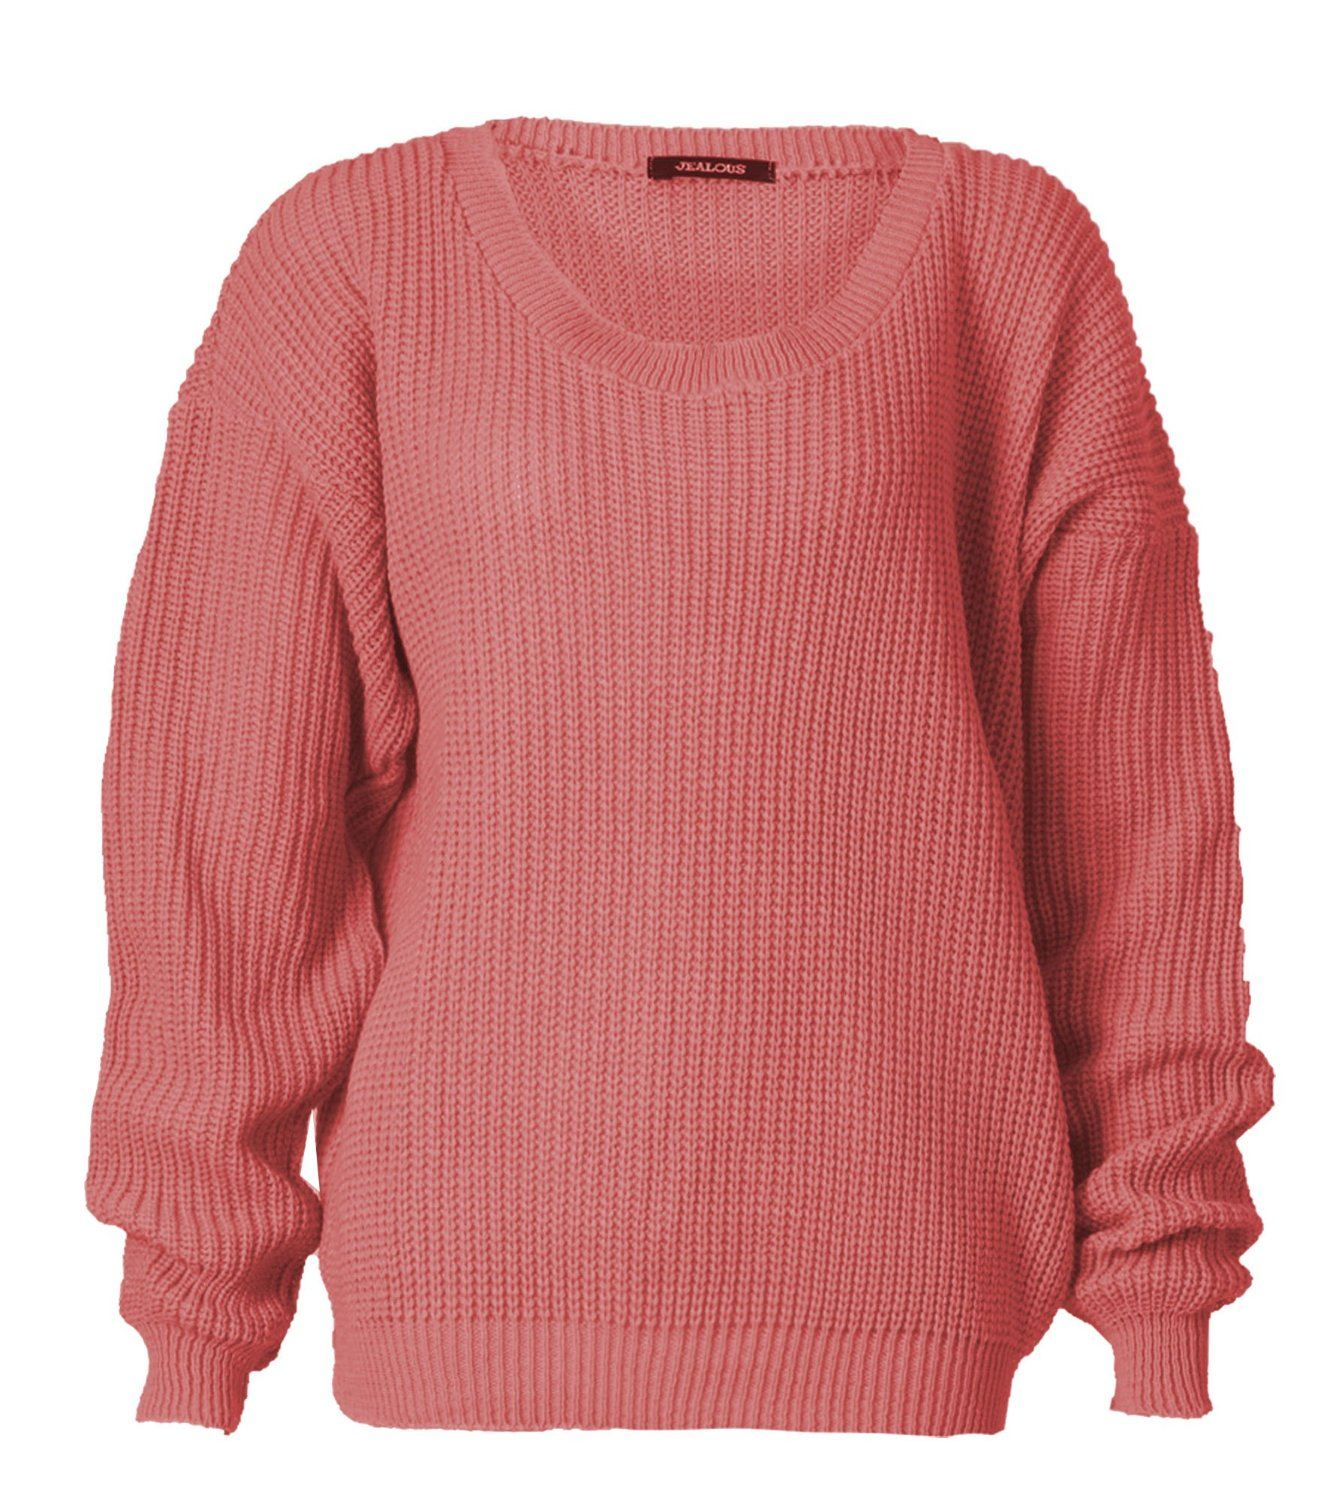 LADIES OVERSIZED BAGGY JUMPER KNITTED WOMENS SWEATER CHUNKY KNIT TOP JUMPERS ...